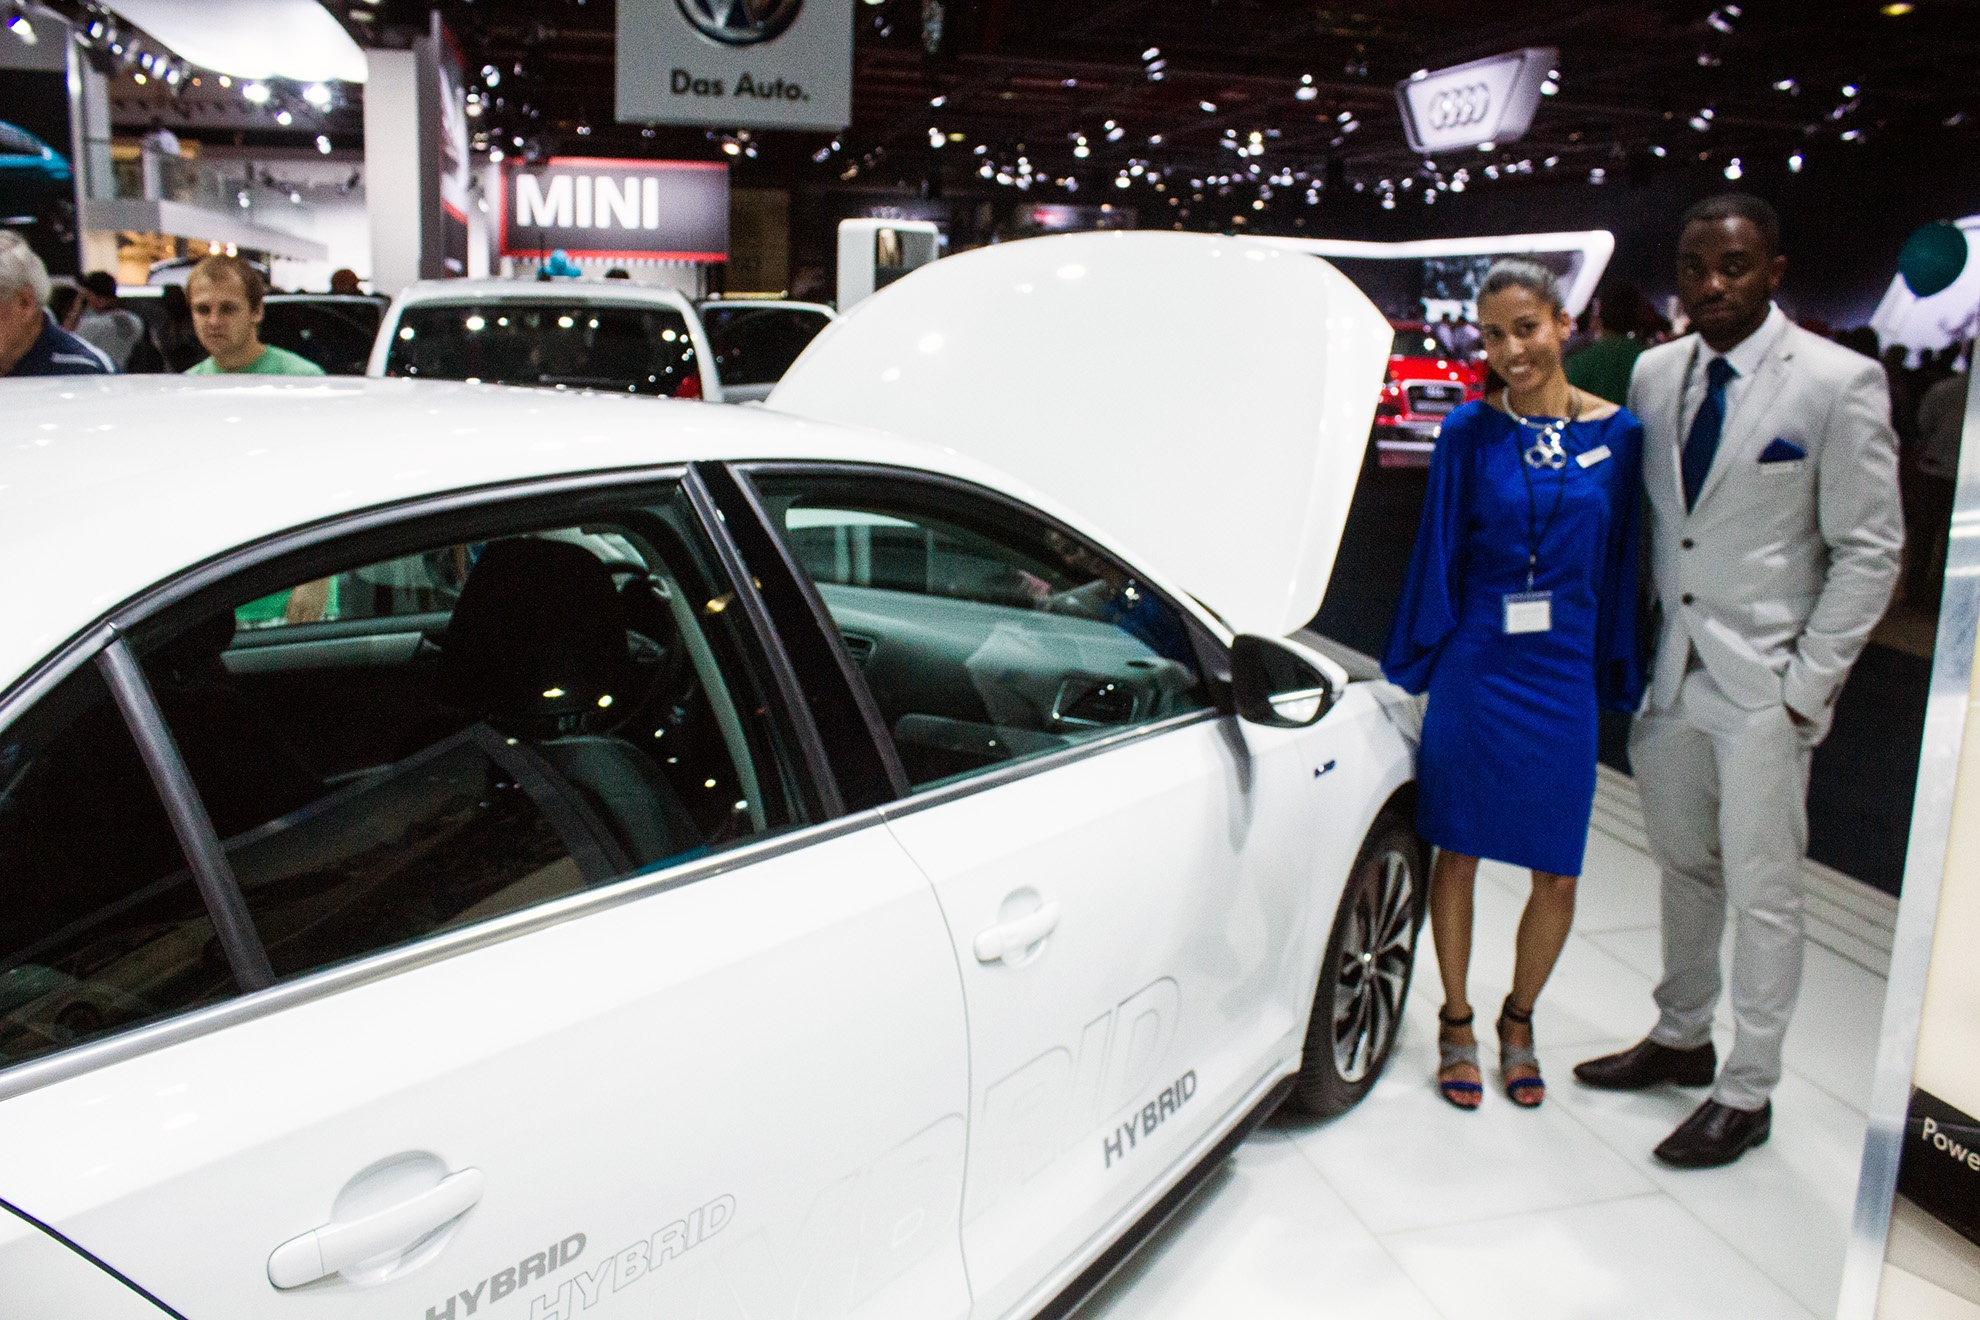 cars-at-the-johannesburg-motor-show